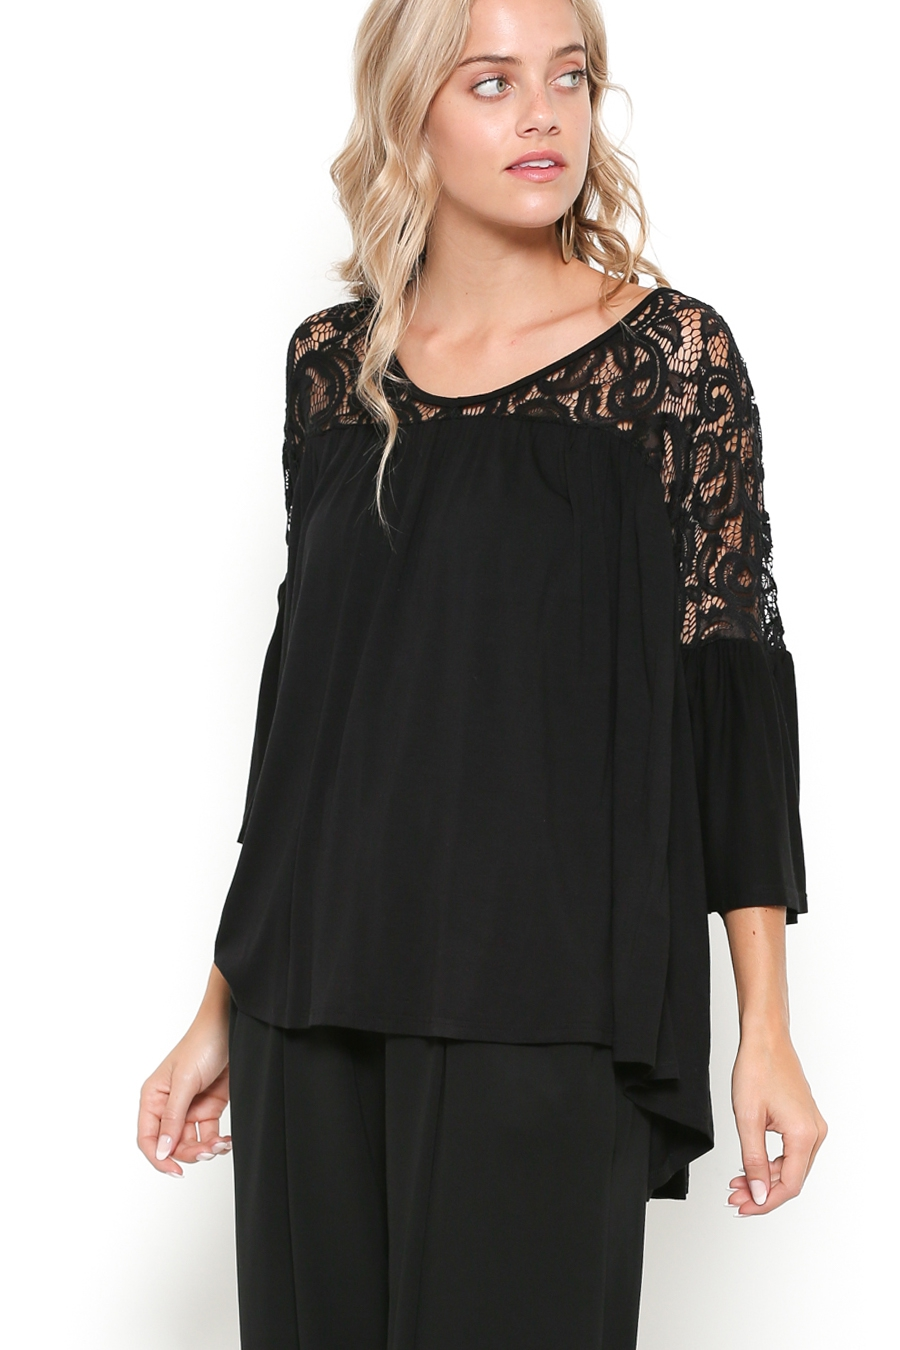 OVERSIZE LACE SHOULDER BOHEMIAN TOP - orangeshine.com